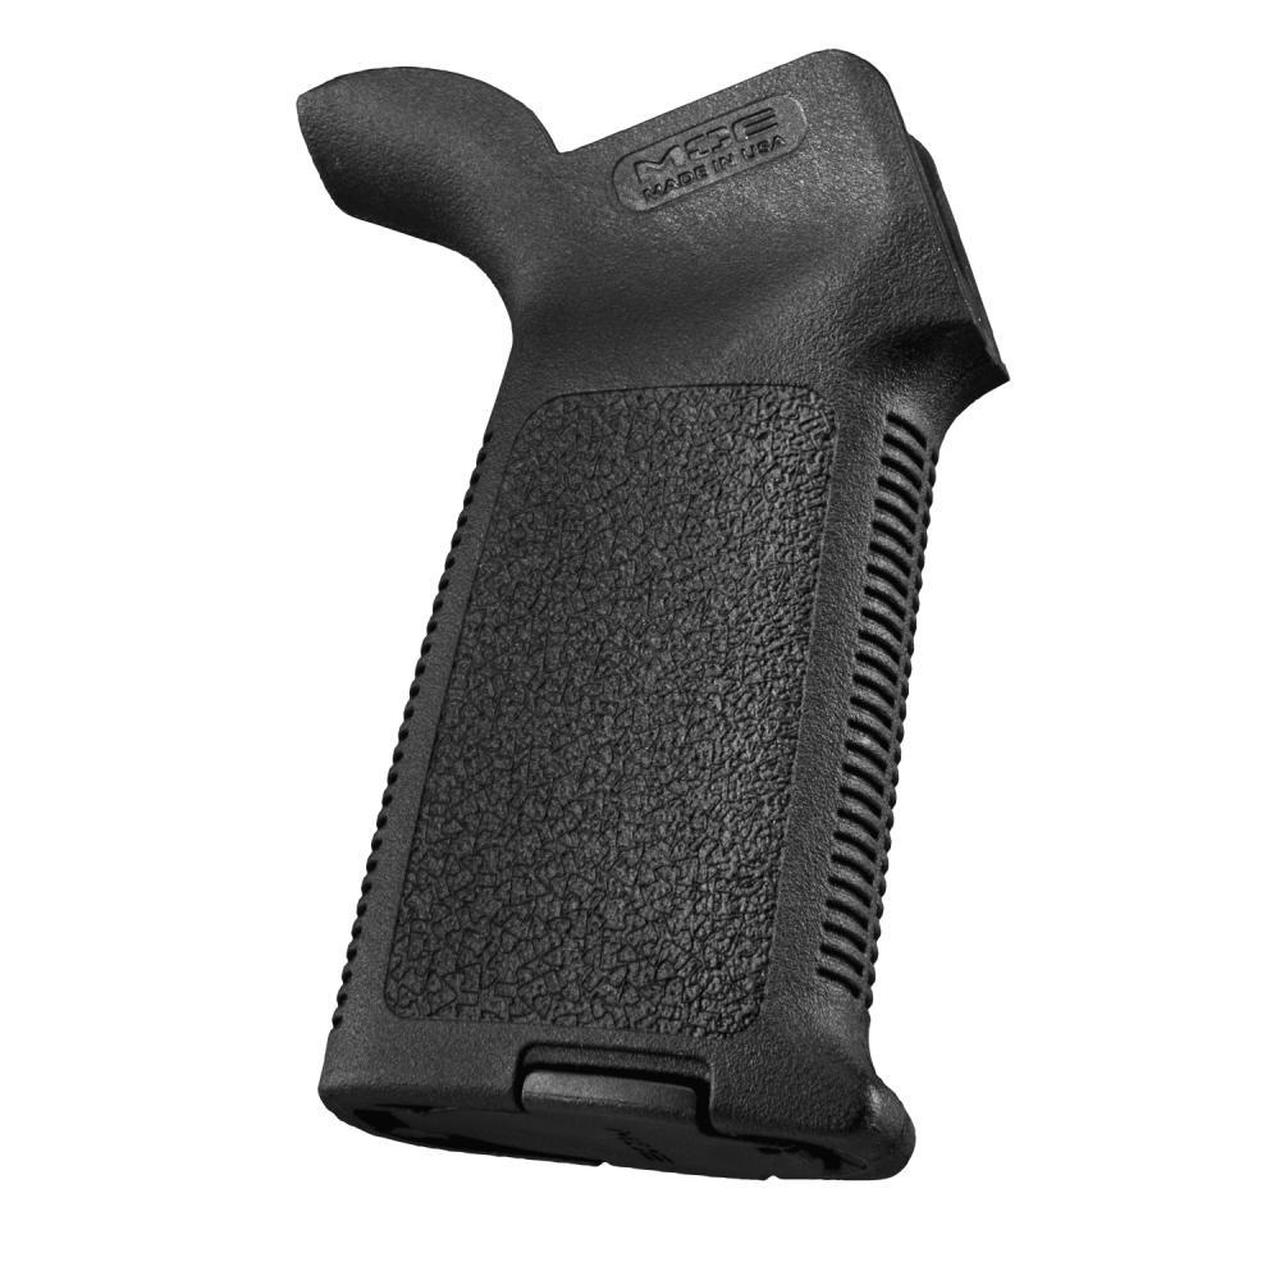 A Magpul MOE Grip. The most popular aftermarket grip, it also offers you a storage option inside.